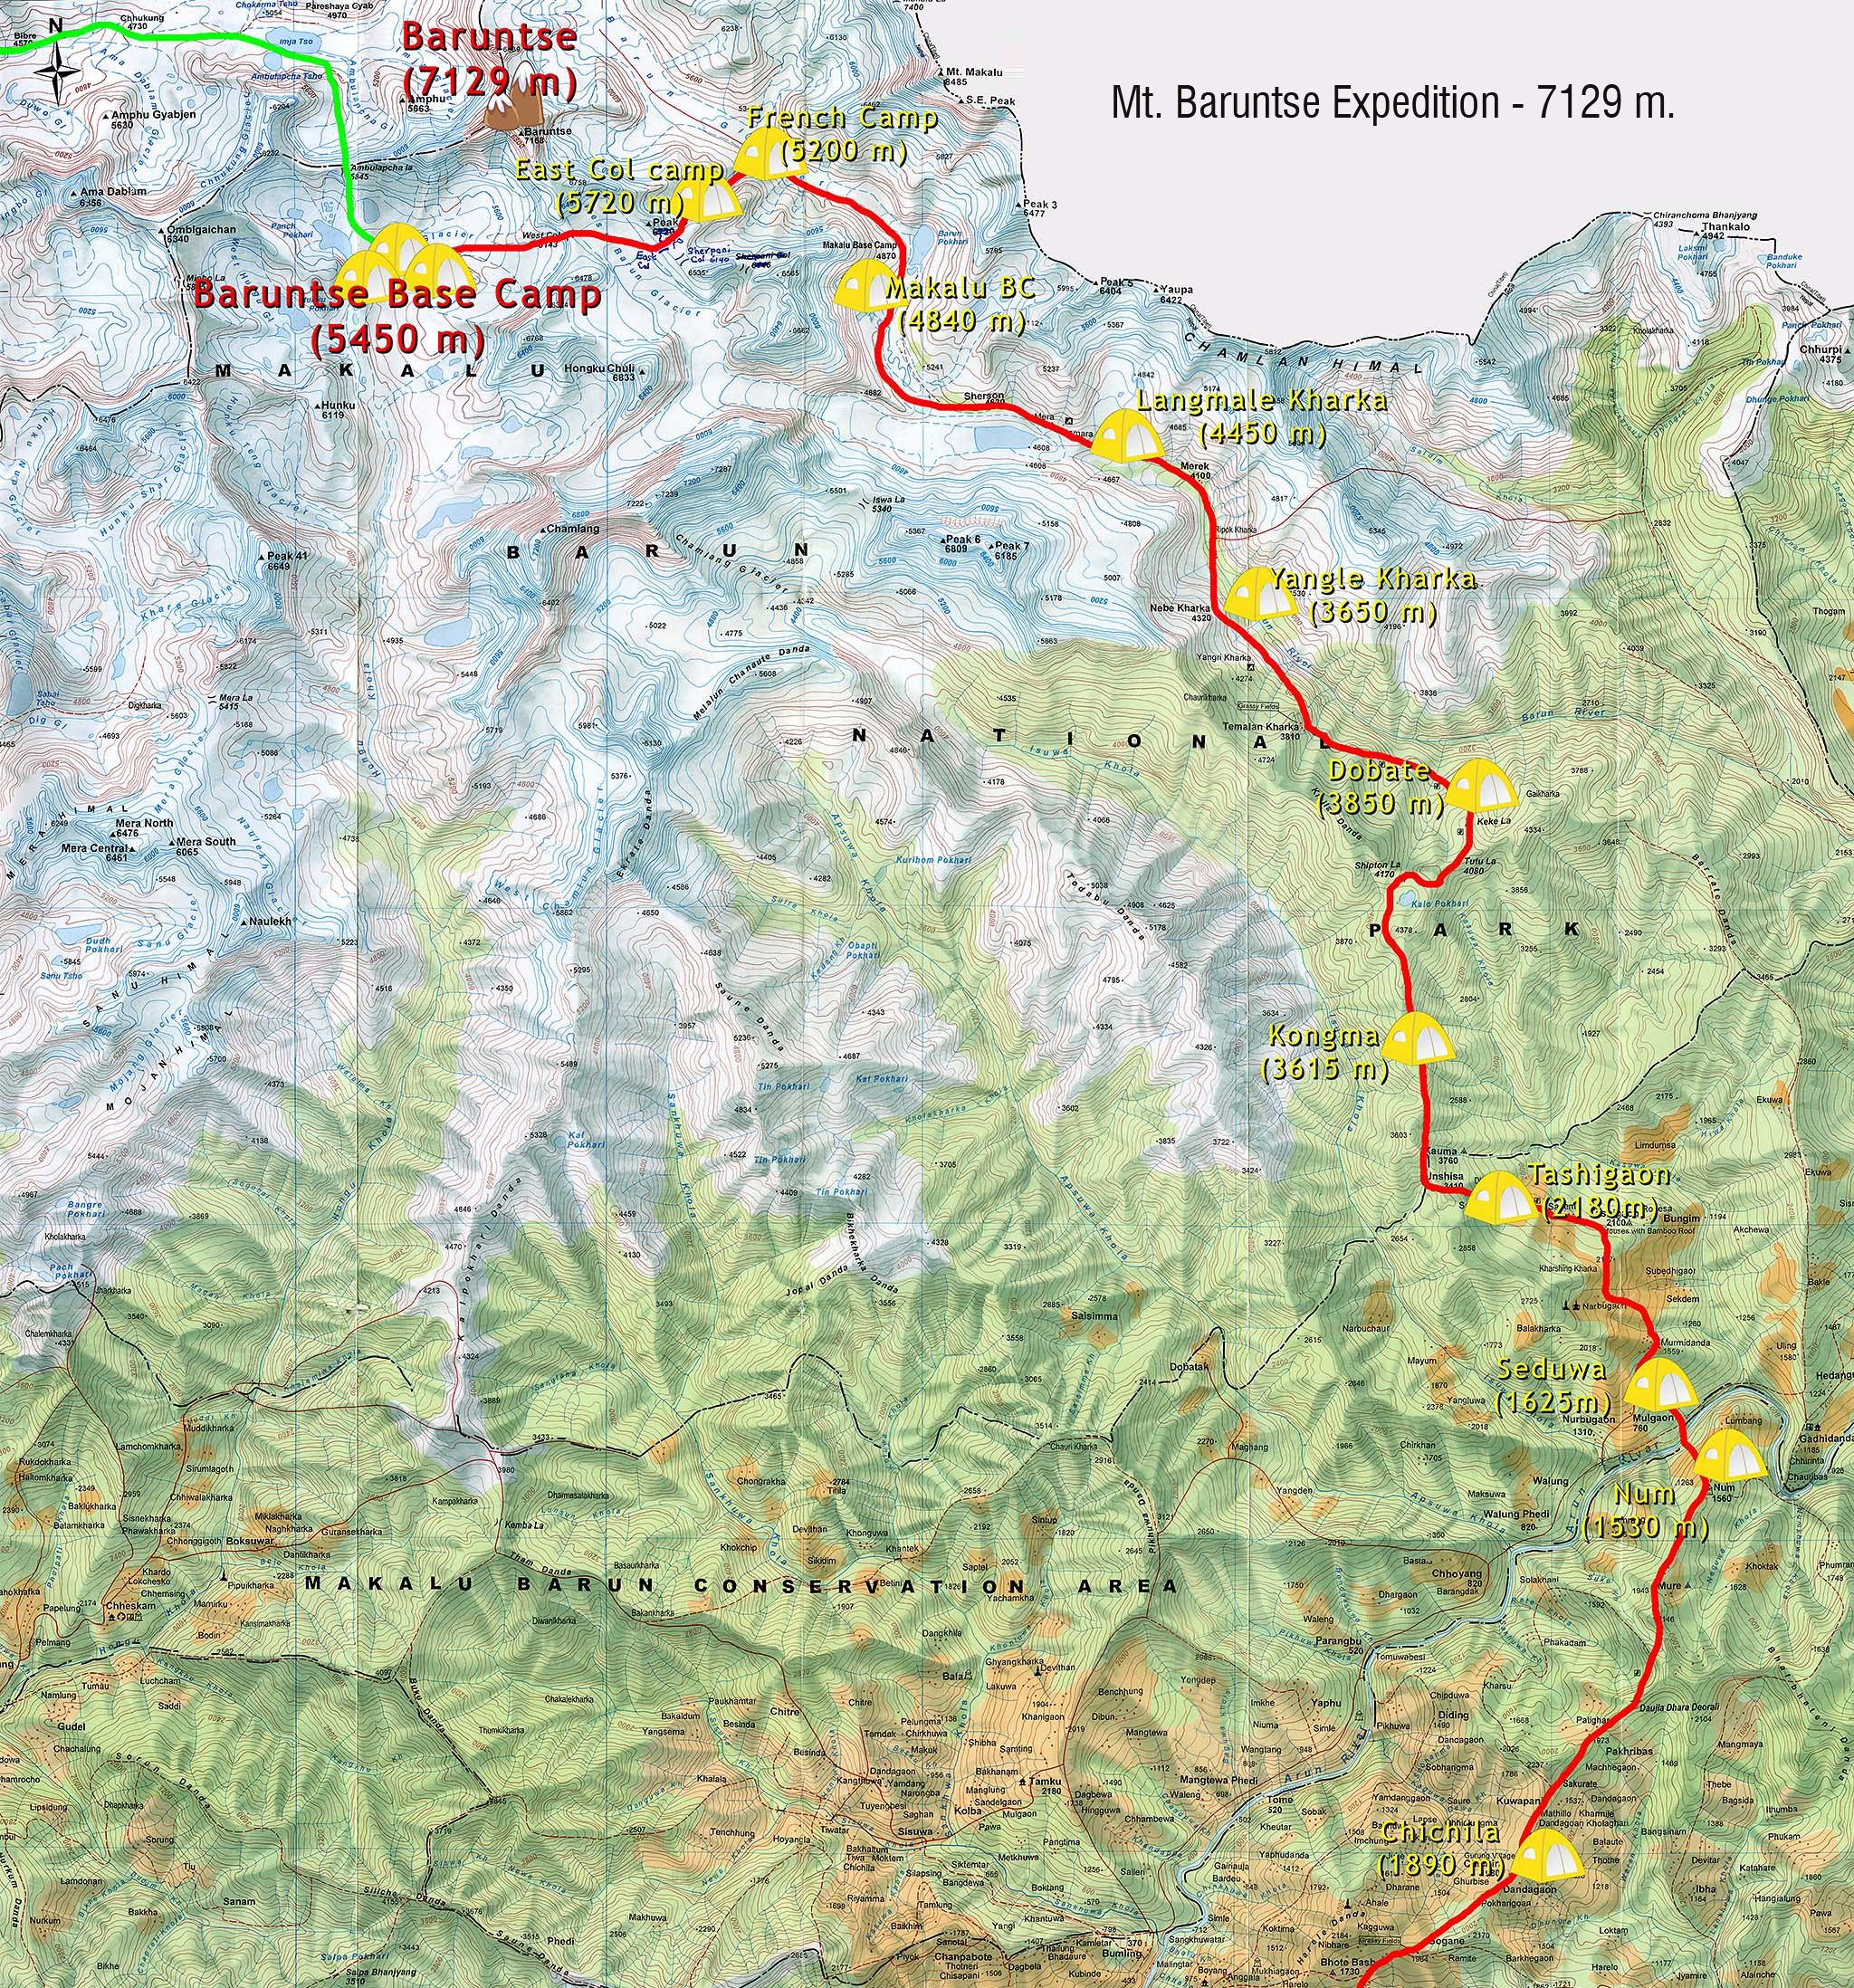 Mt Baruntse Expedition Map